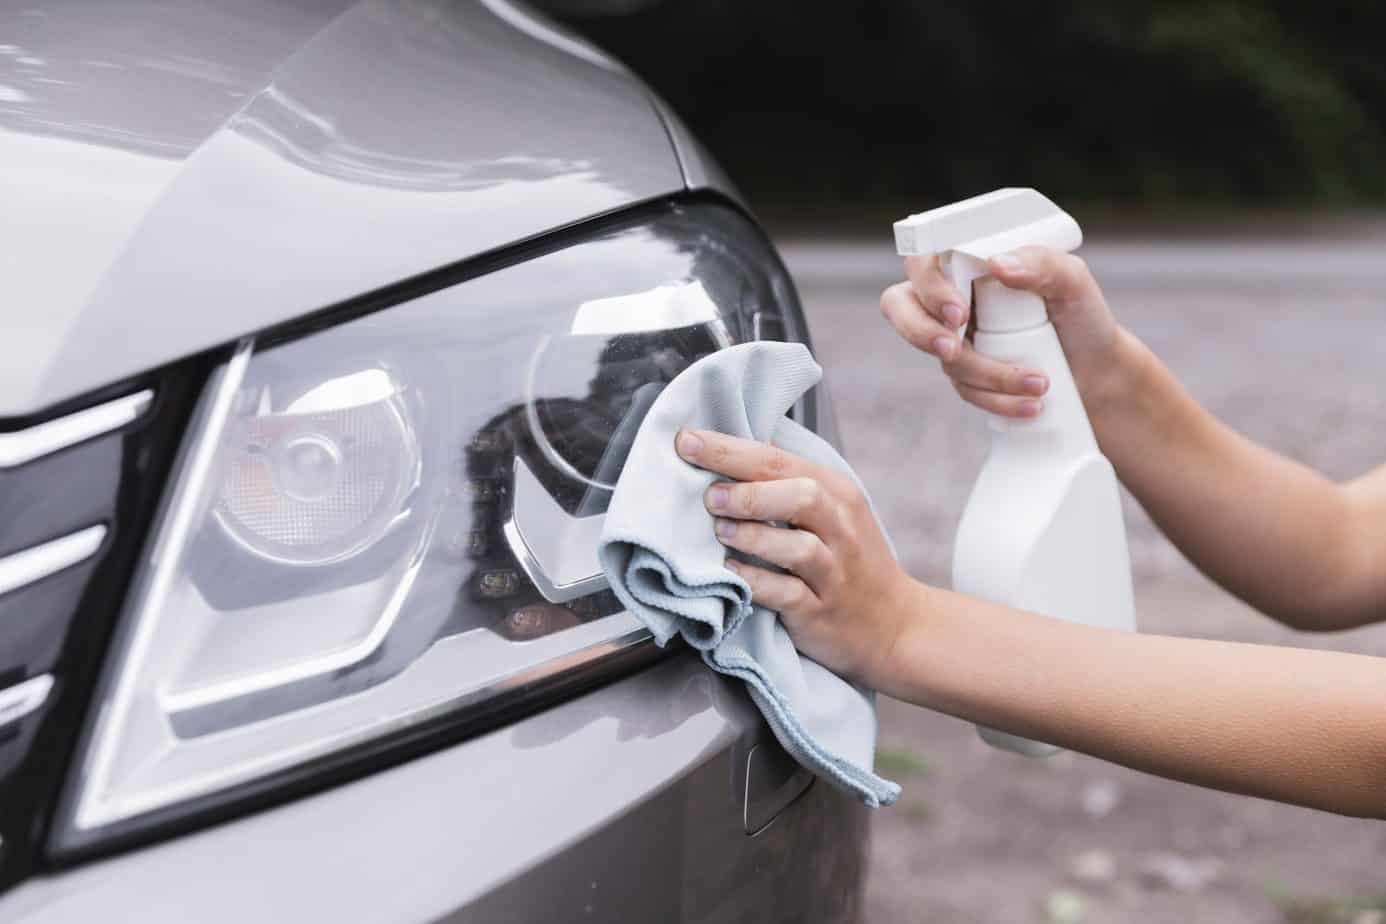 Using Microfibre Cloths to Clean Cars